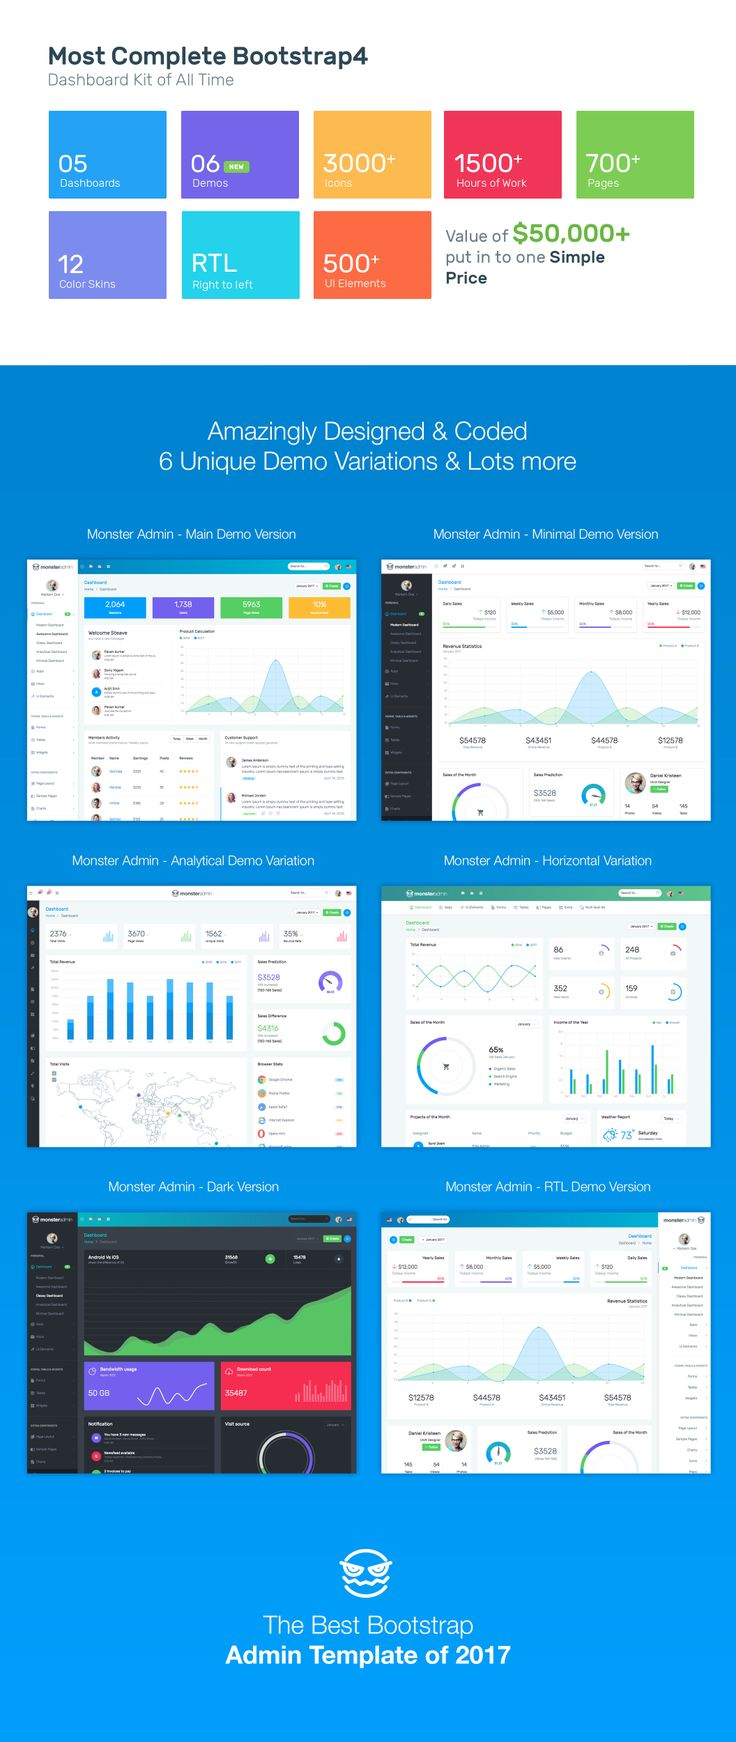 Monster Admin is a popular open source WebApp template for admin dashboards and control admin panels. Monster Admin is fully responsive HTML template, based on the CSS framework Bootstrap 4. It utilizes all of the Bootstrap components in its design and re-styles many commonly used plugins to create a consistent design that can be used as a user interface for backend applications.   Monster Admin is based on a modular design, which allows it to be easily customized and built upon. The…